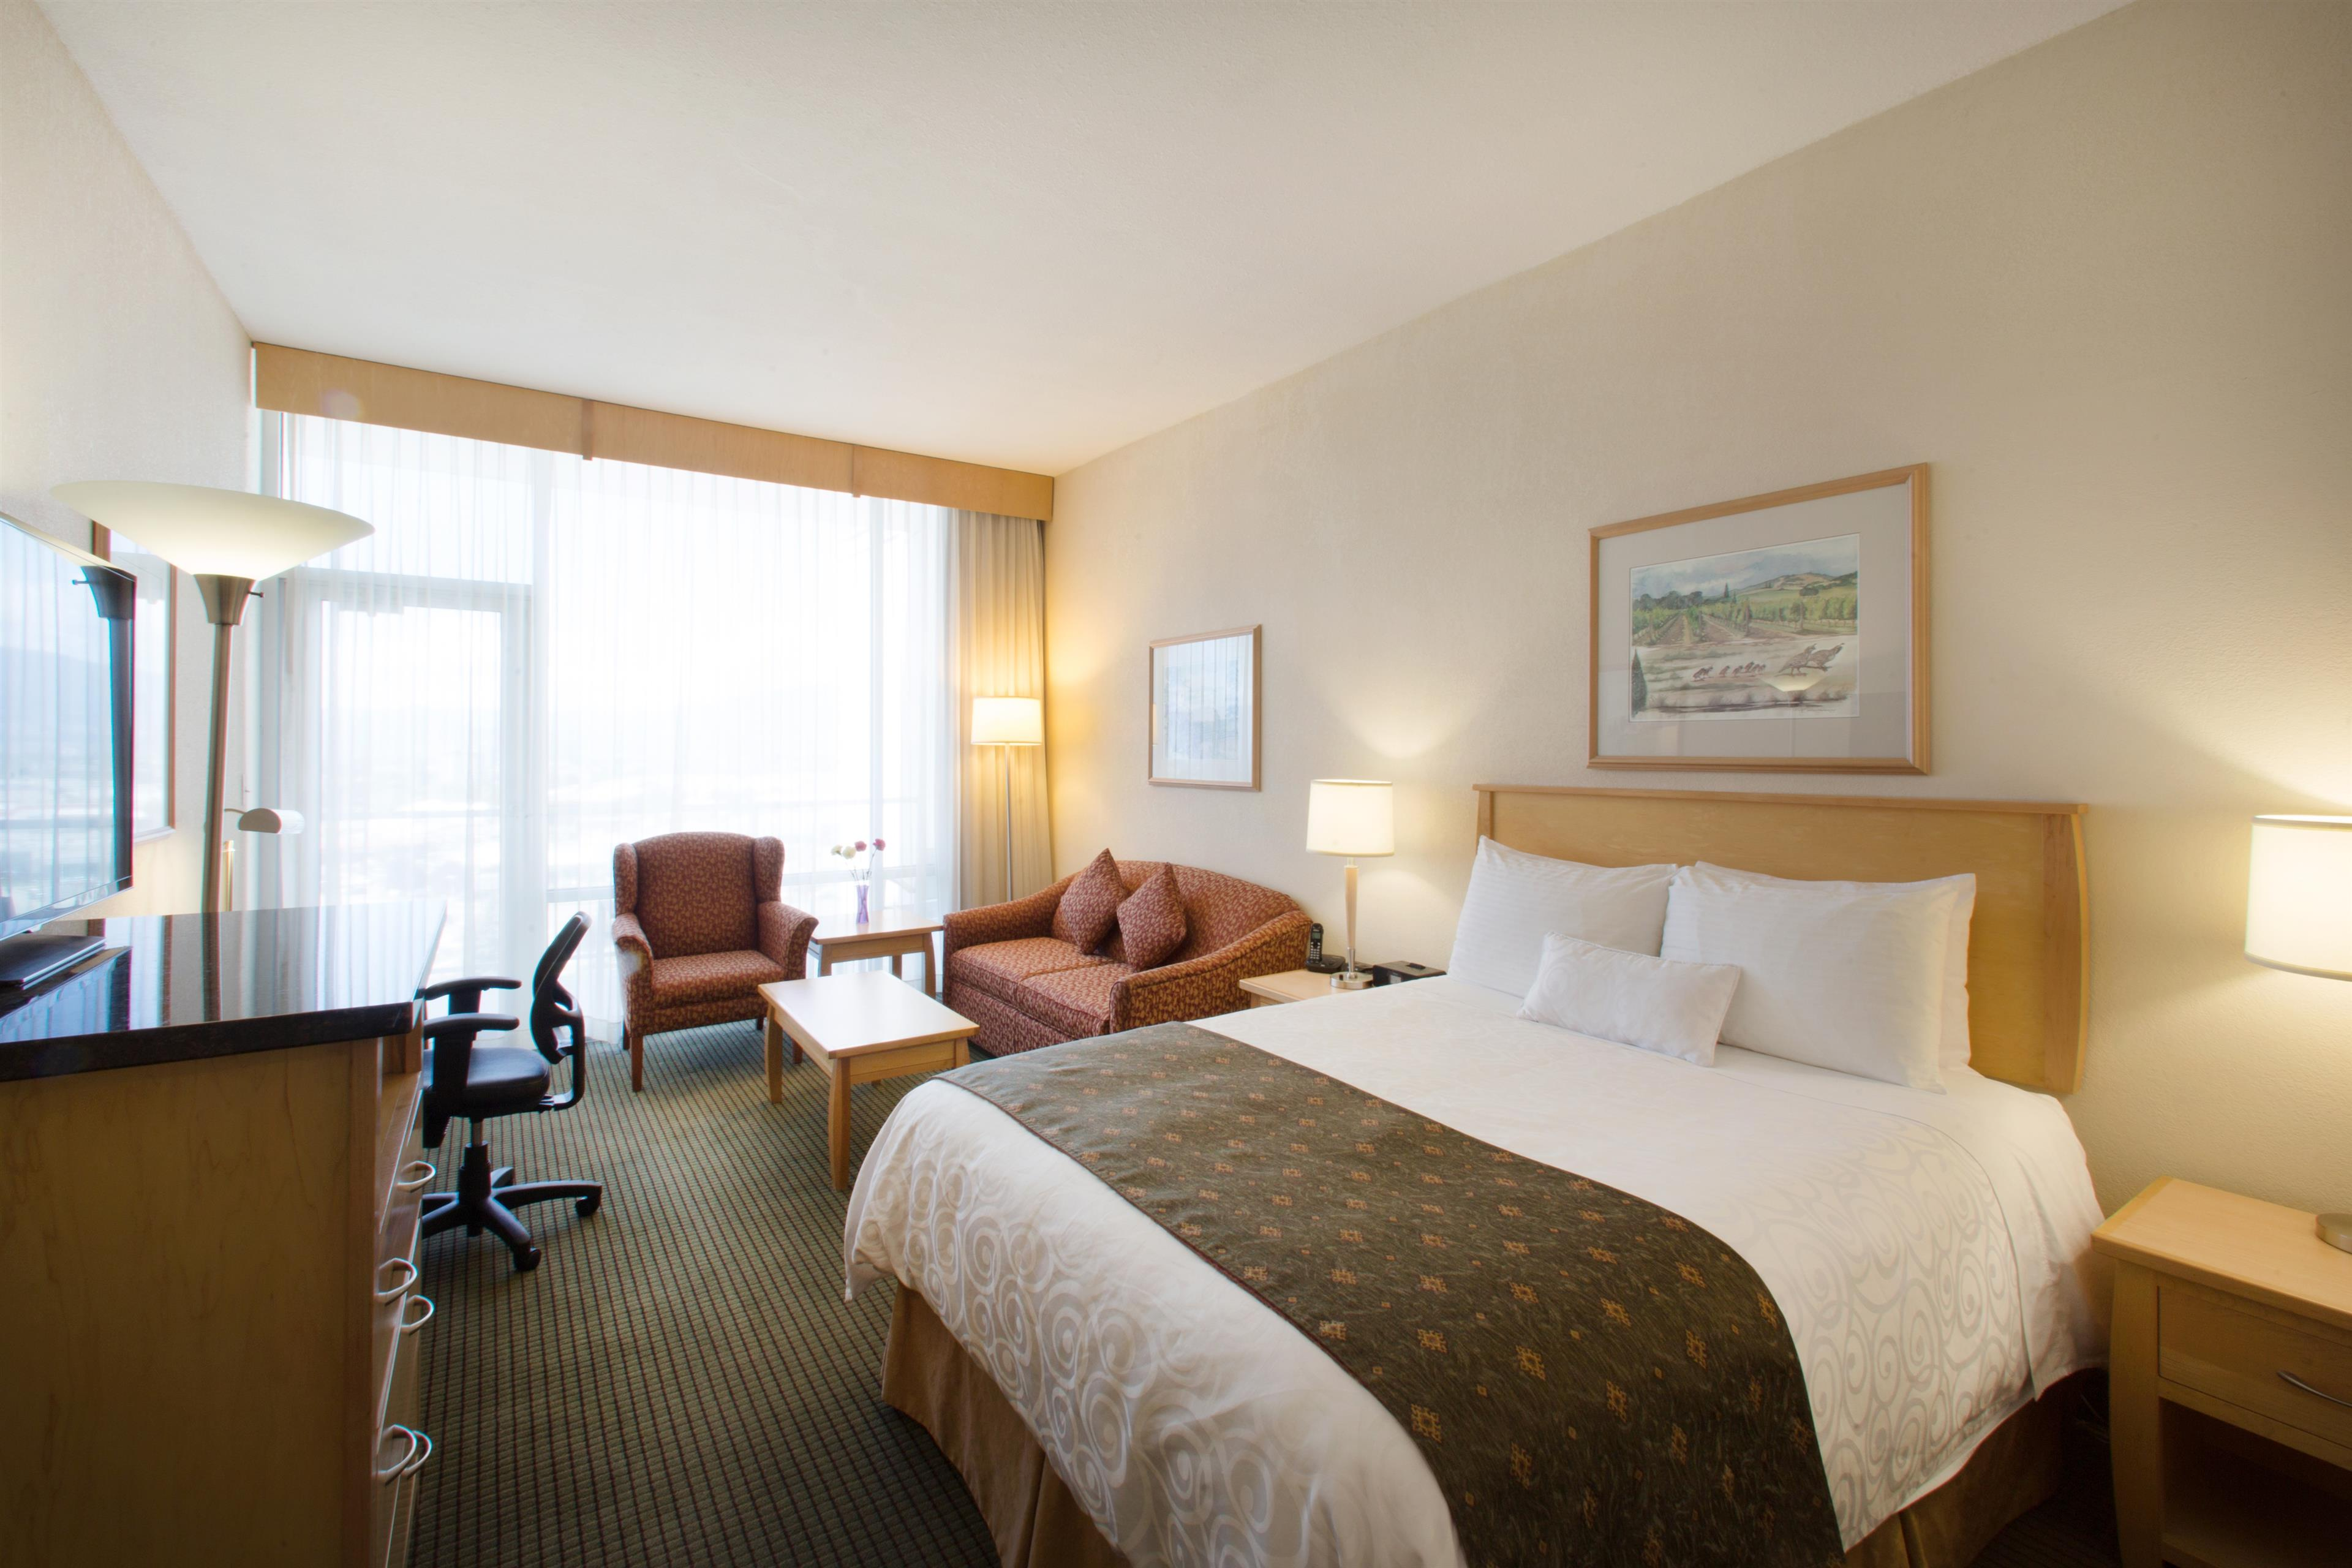 Best Western Plus Kelowna Hotel & Suites in Kelowna: Standard Tower with one Queen bed